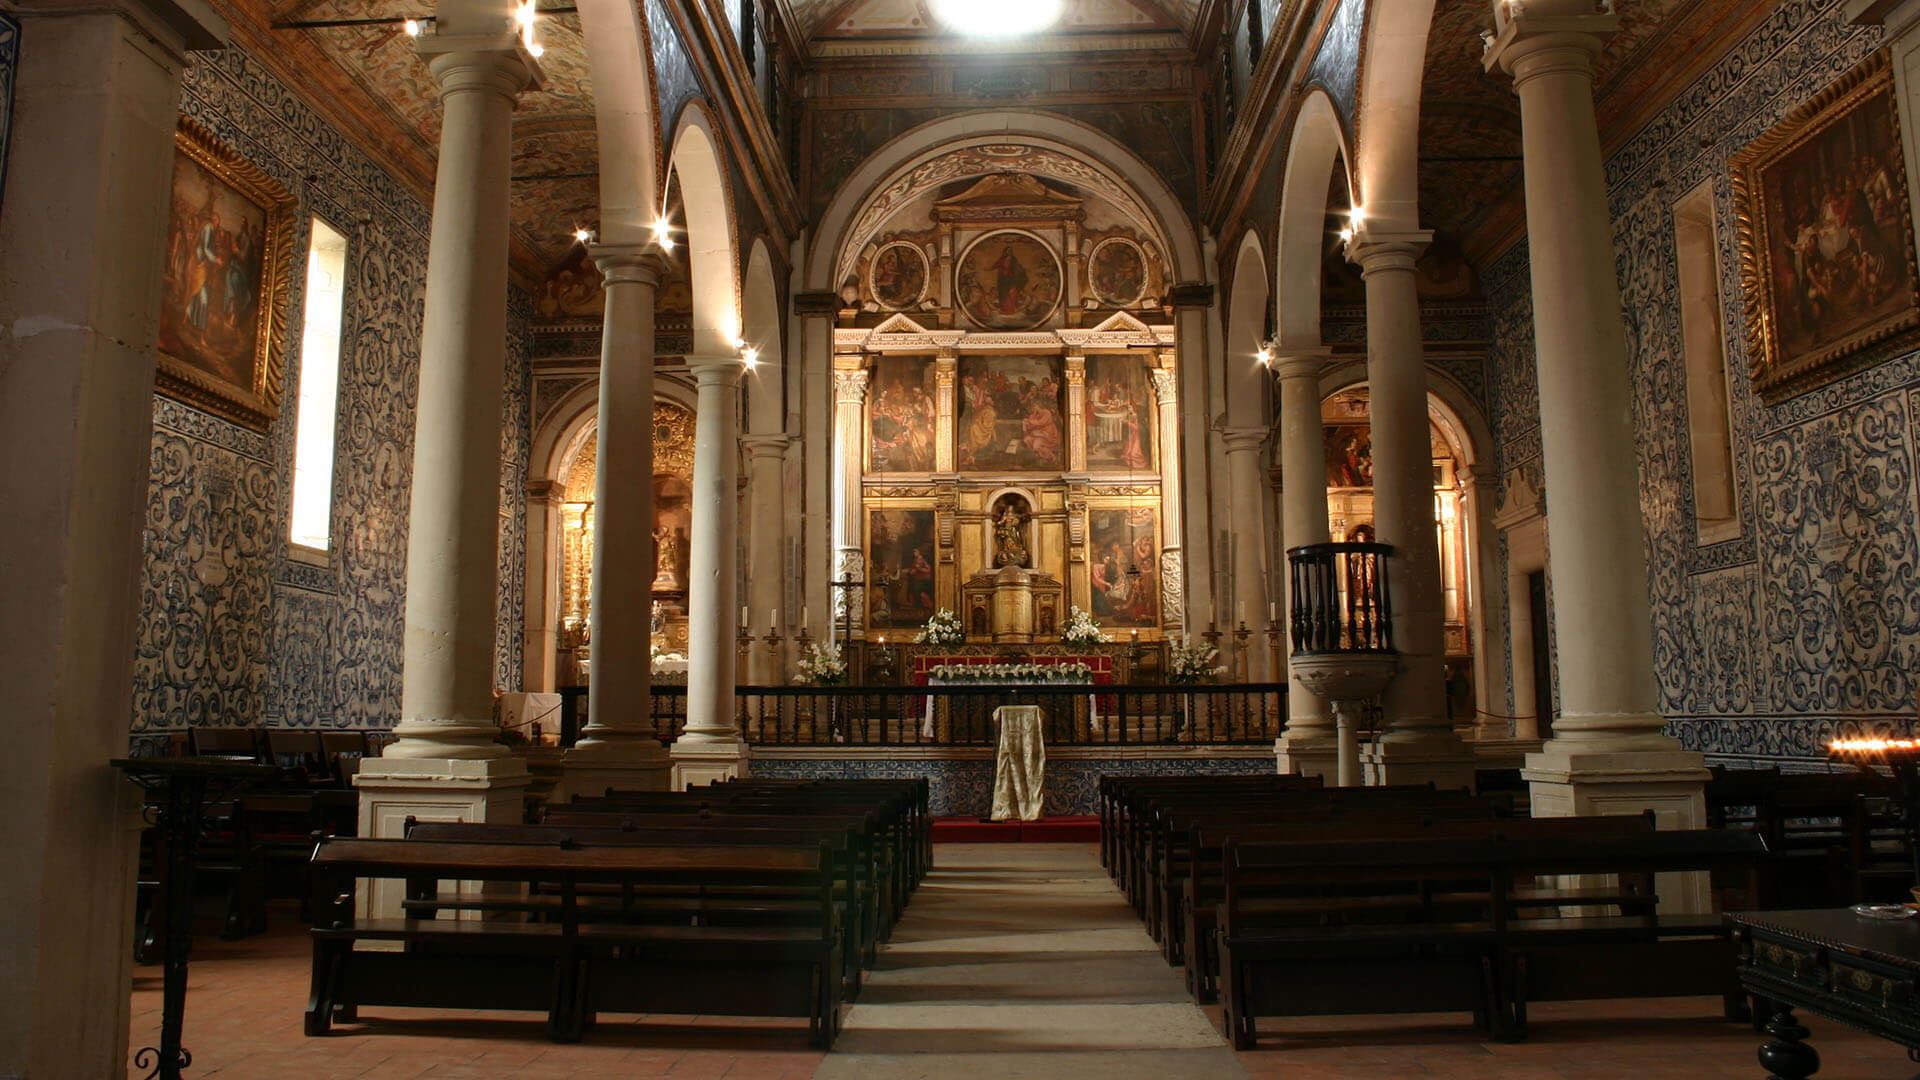 Interior of Santa Maria Church